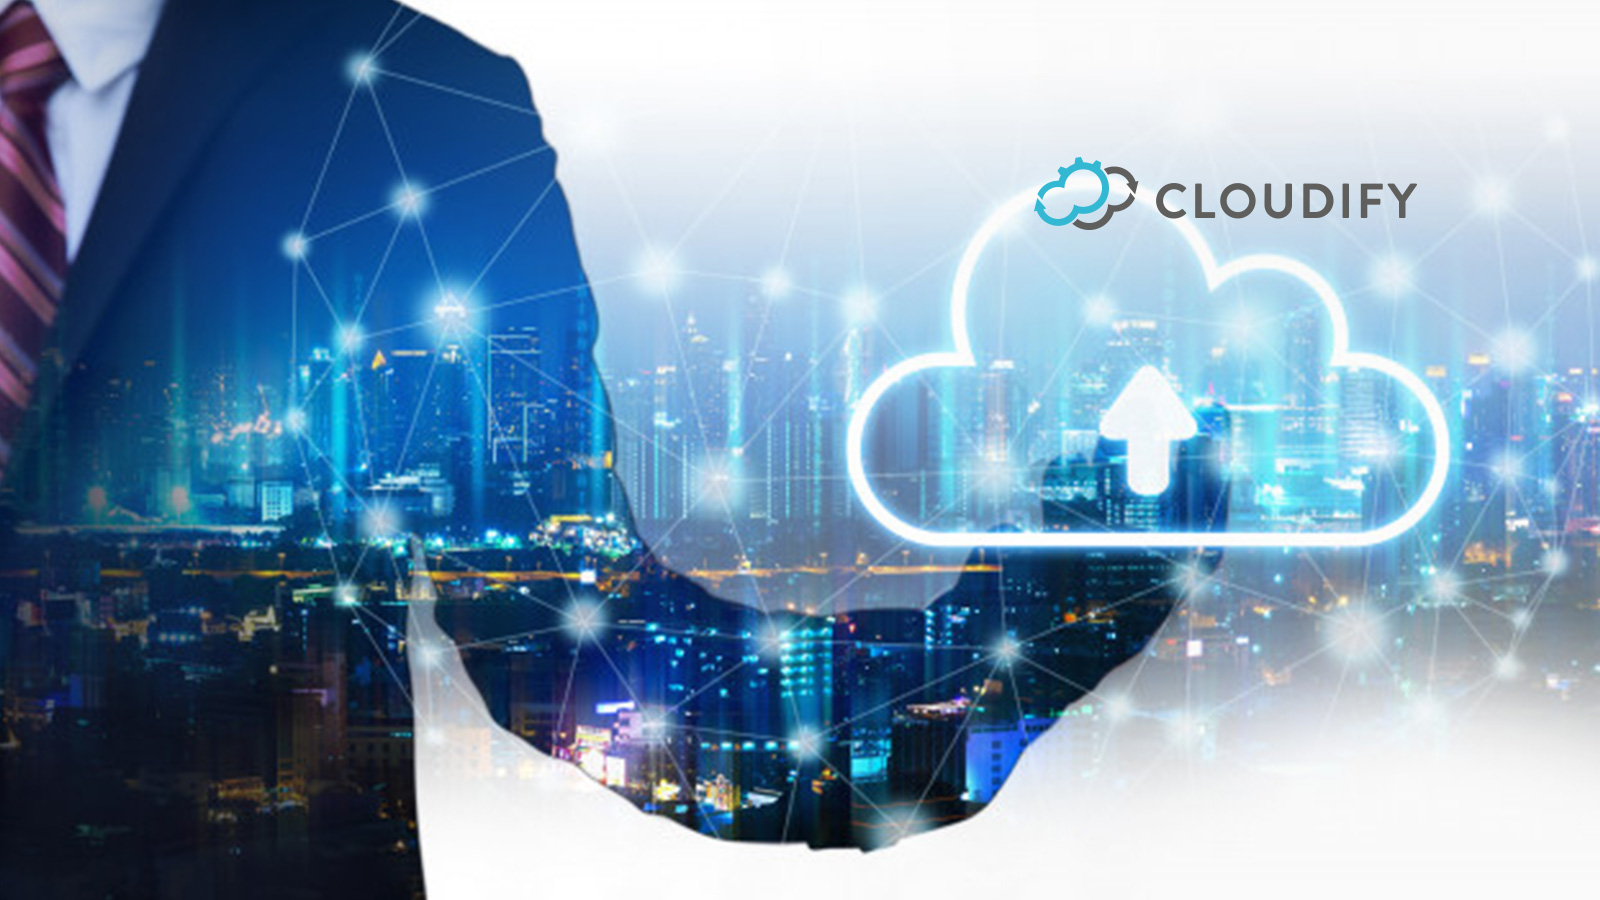 Cloudify Version 4 6 Adds Modular Service Composition